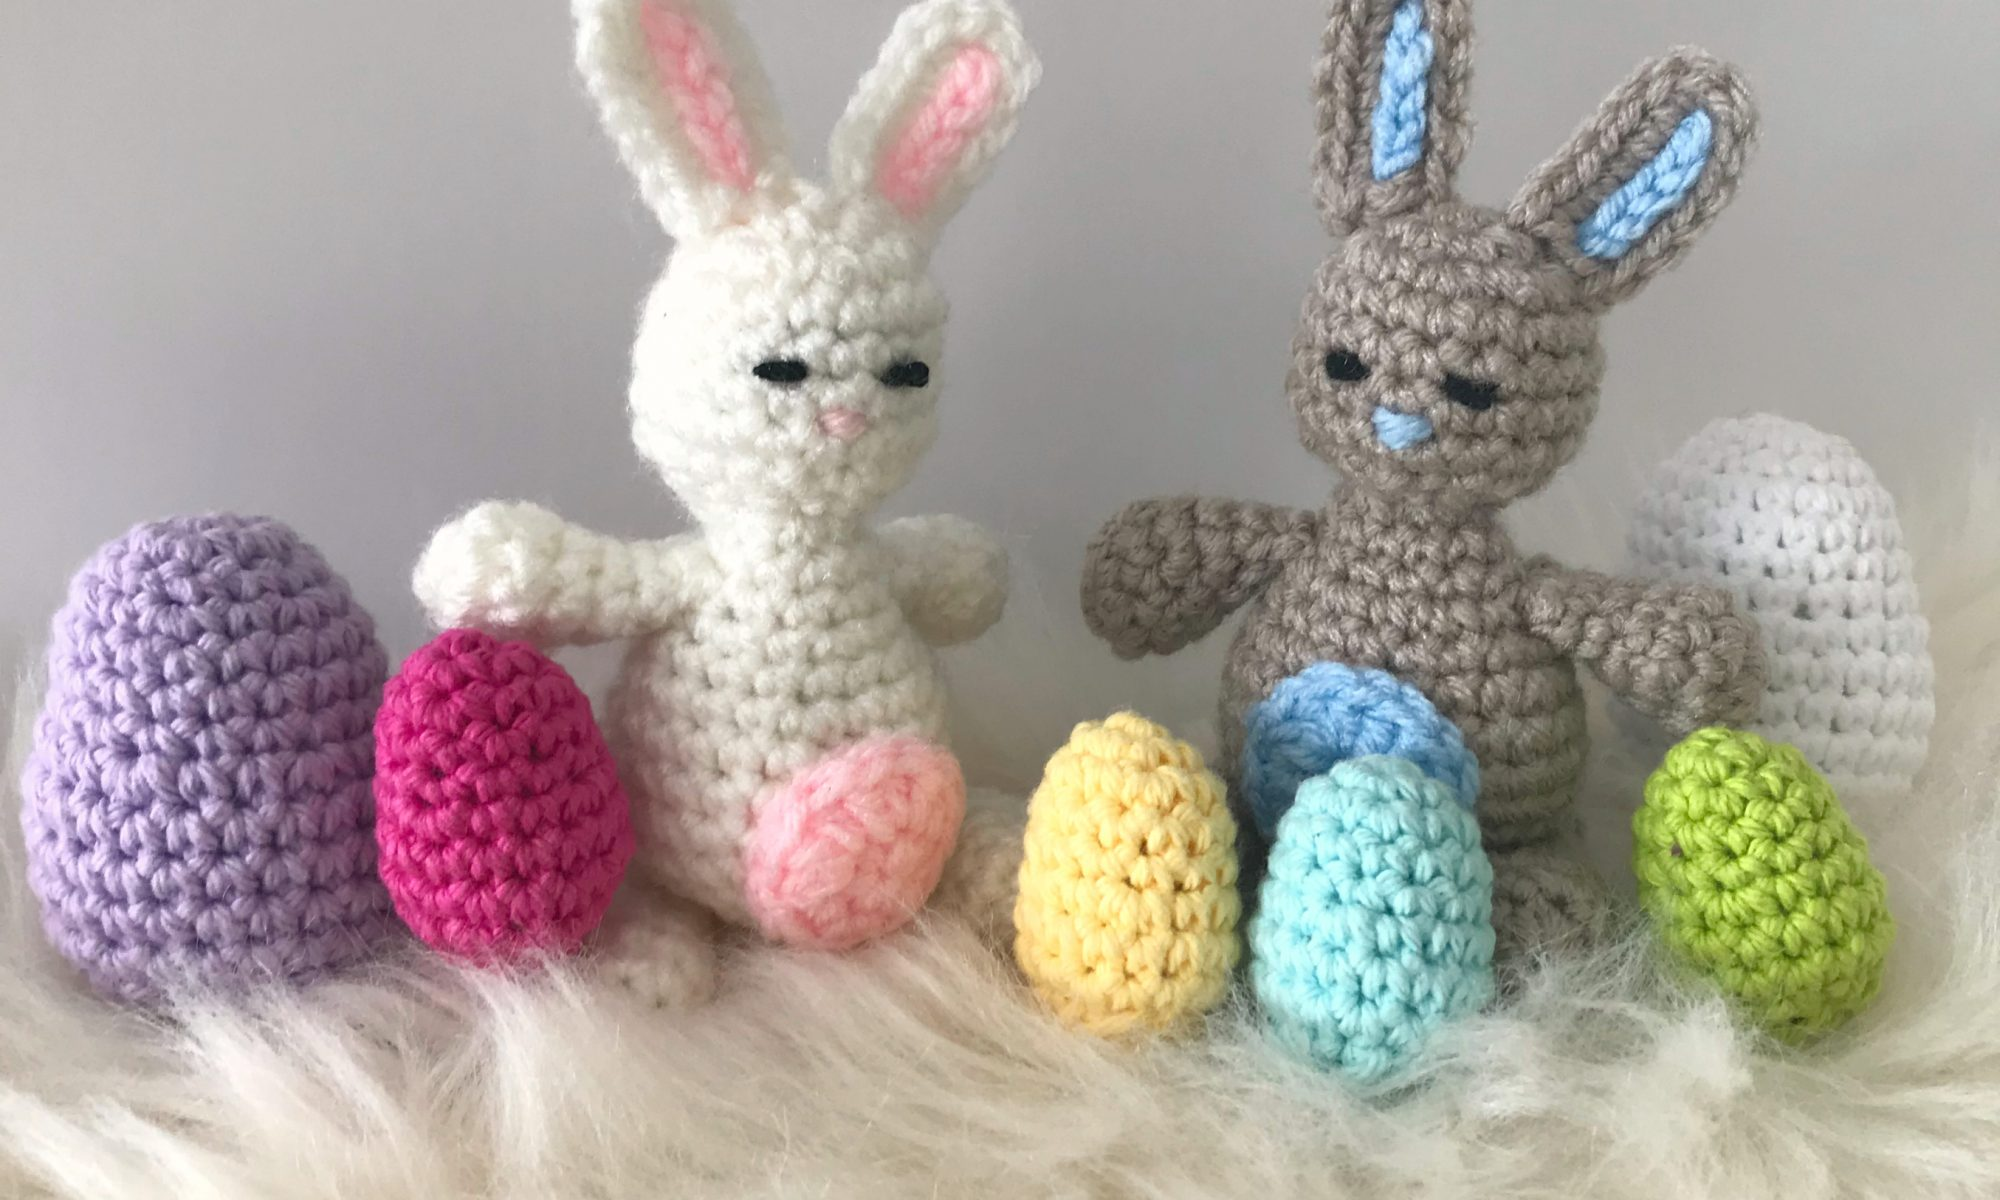 Tiny Bunny Amigurumi - Free Crochet Pattern • Green Fox Farms Designs